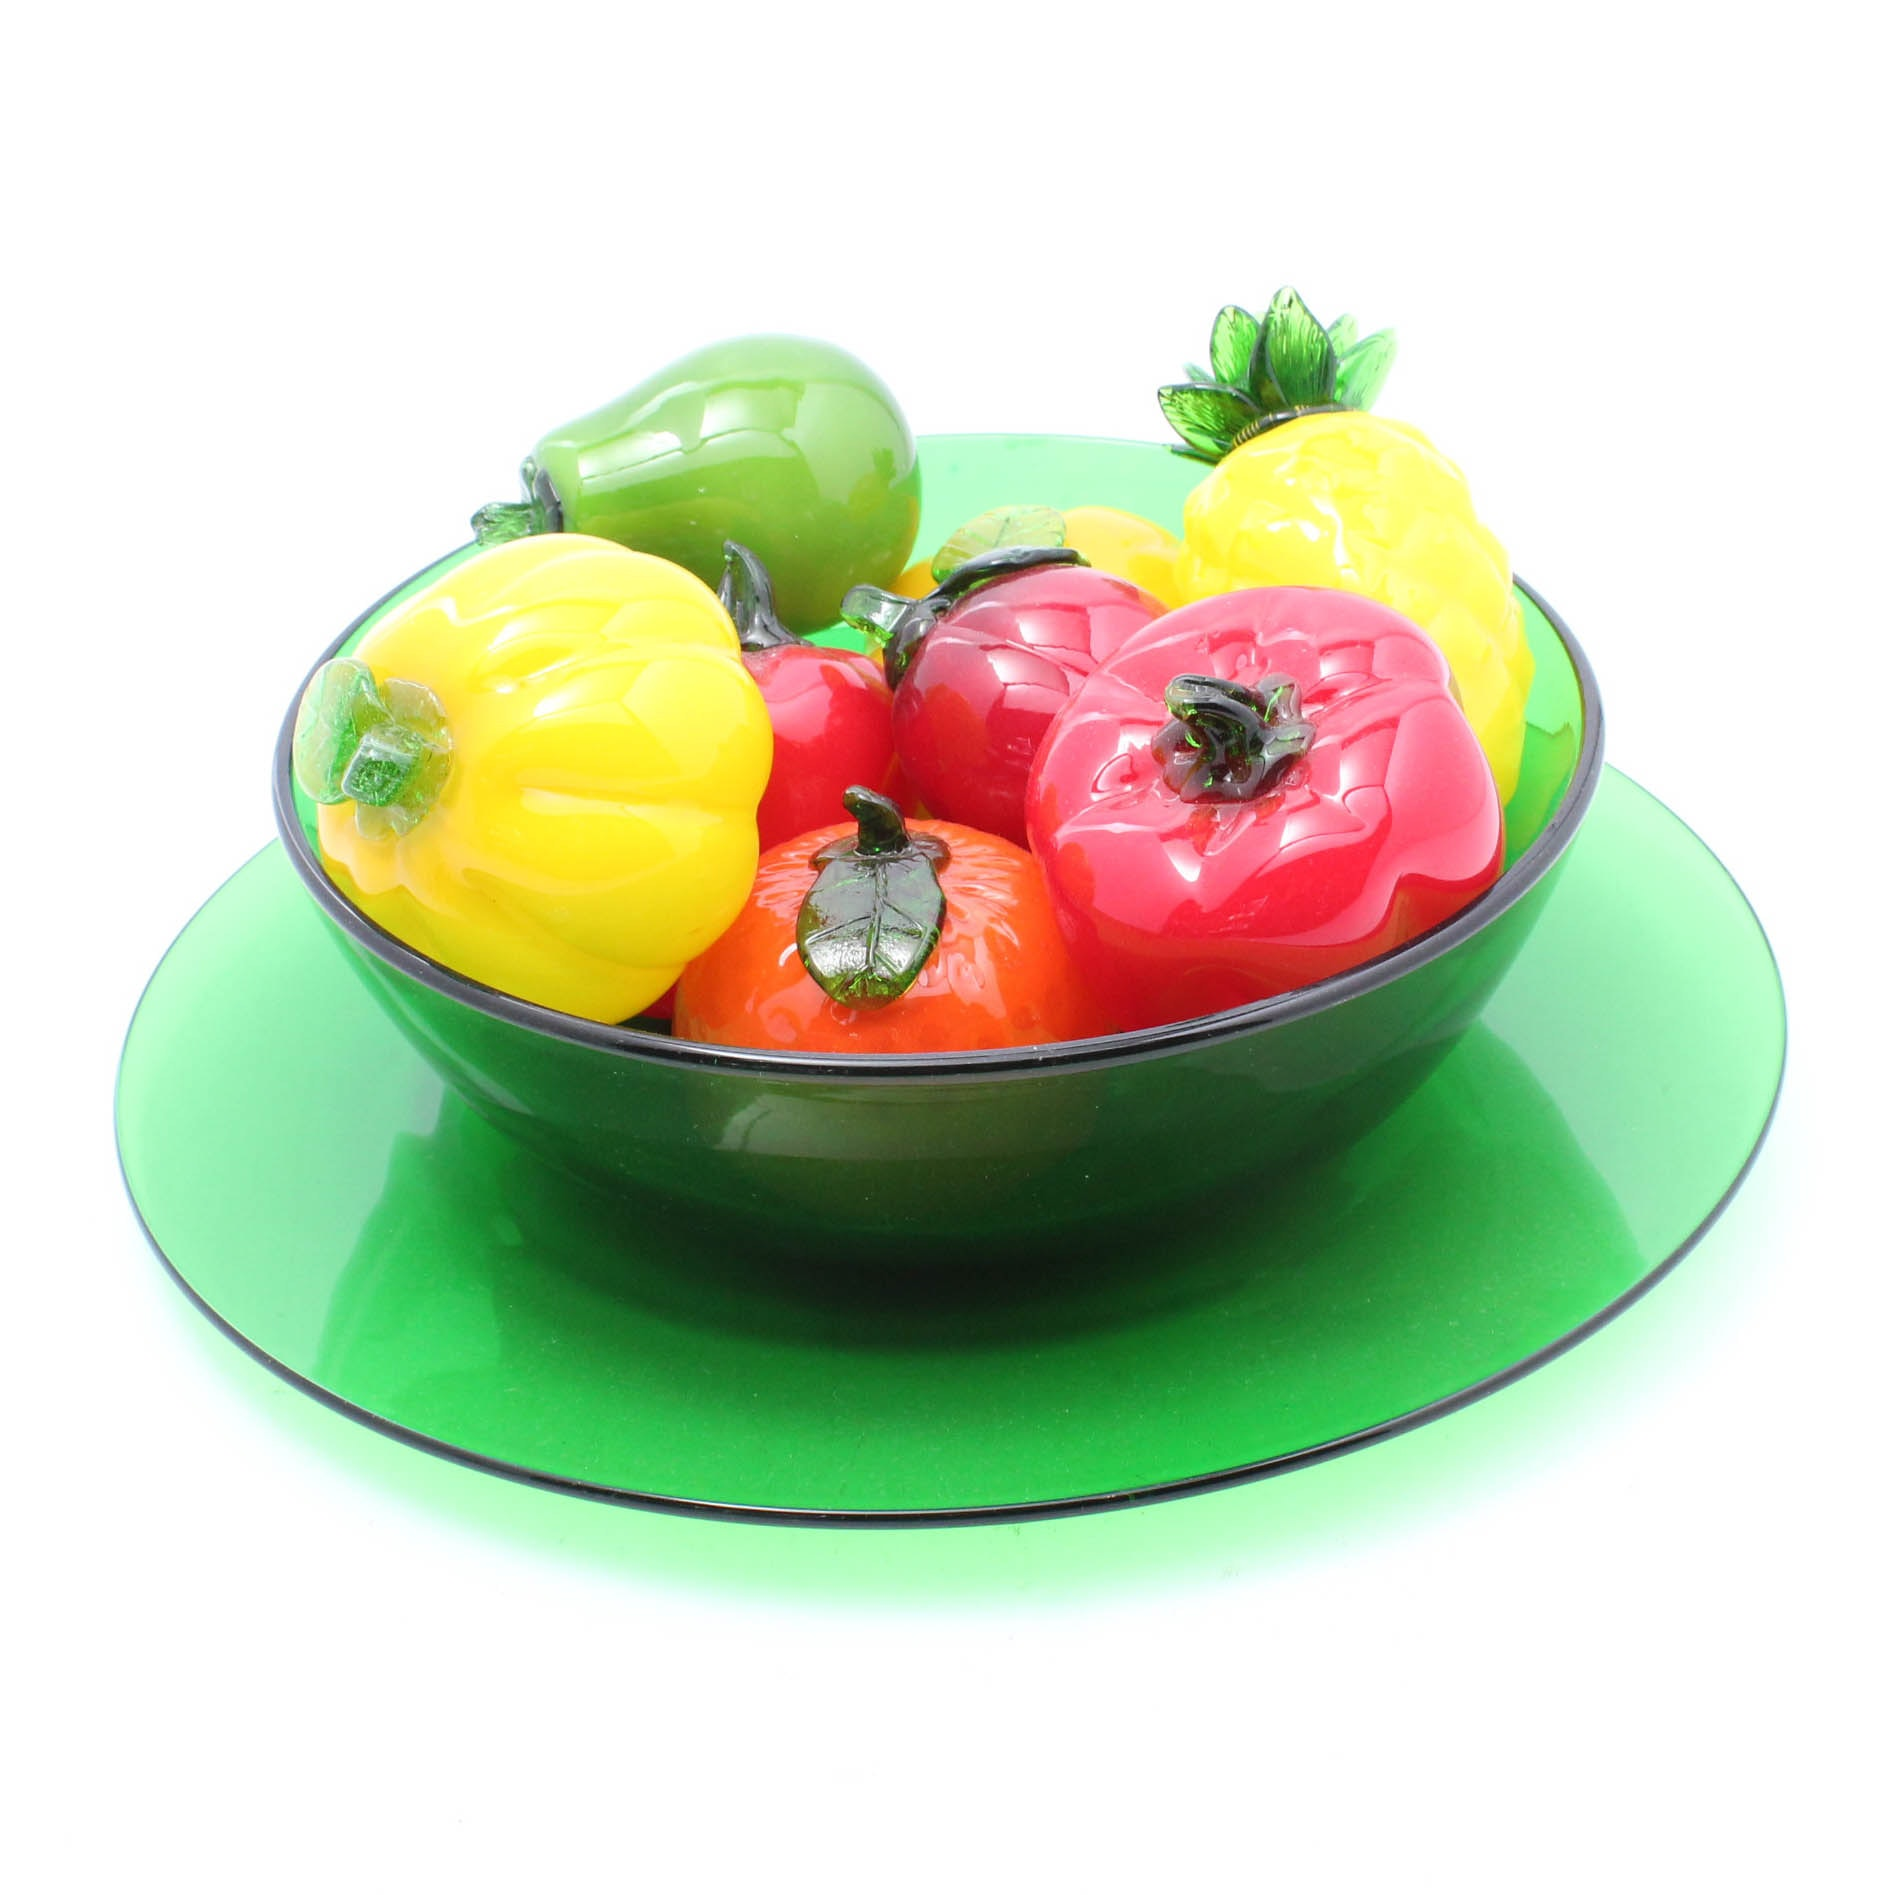 Green Glass Serving Bowl with Glass Fruit